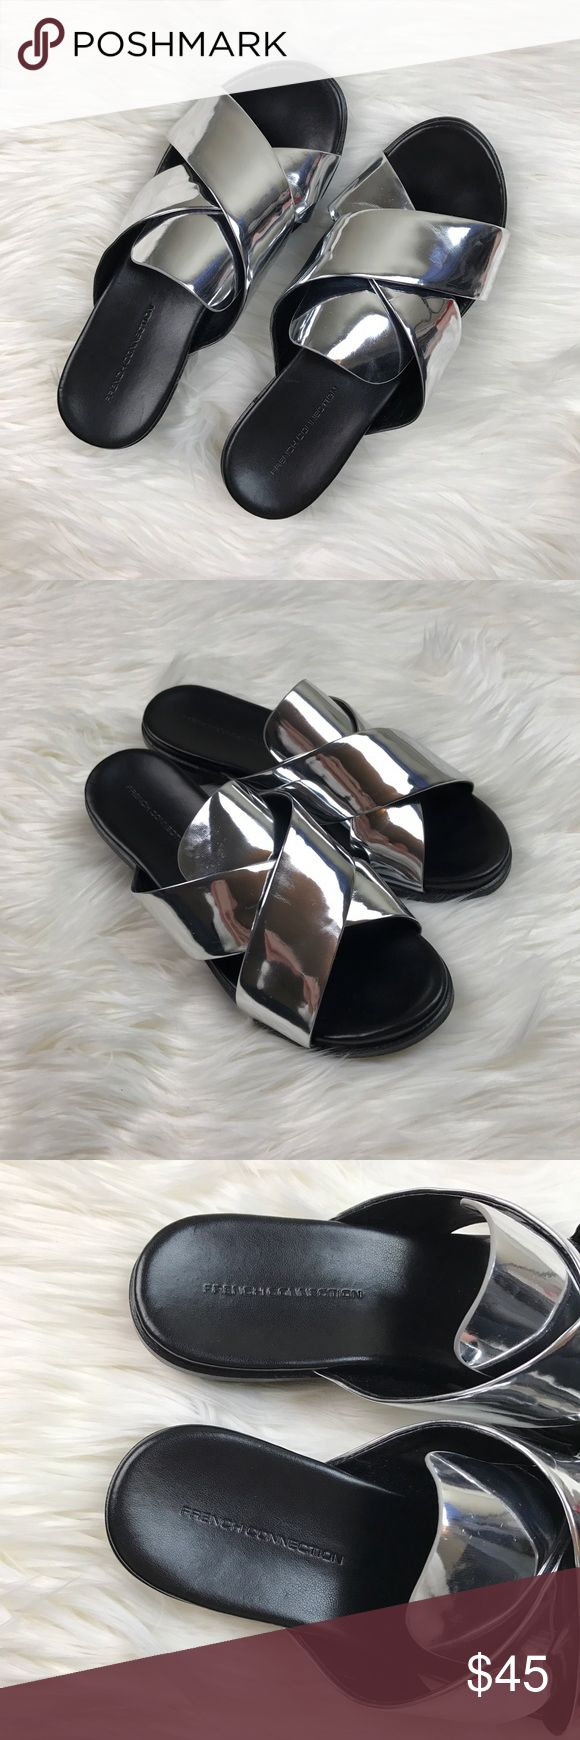 """French Connection Basia Metallic Silver Sandals Amazing sandals for upcoming spring and summer. Slip on style. Silver shiny metallic color. """"Basia"""" style. Gently used with no flaws! French Connection Shoes"""